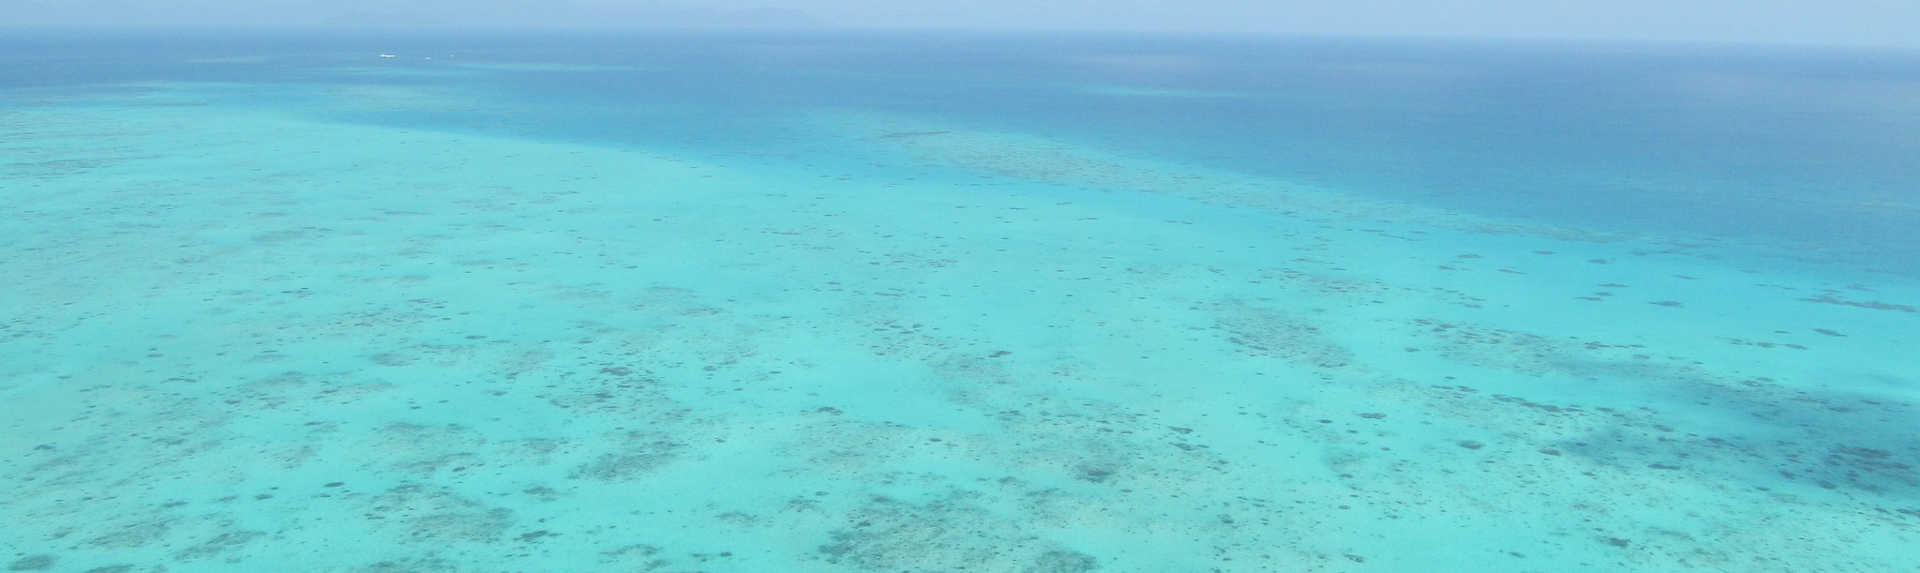 How long is the boat ride to the Great Barrier Reef?